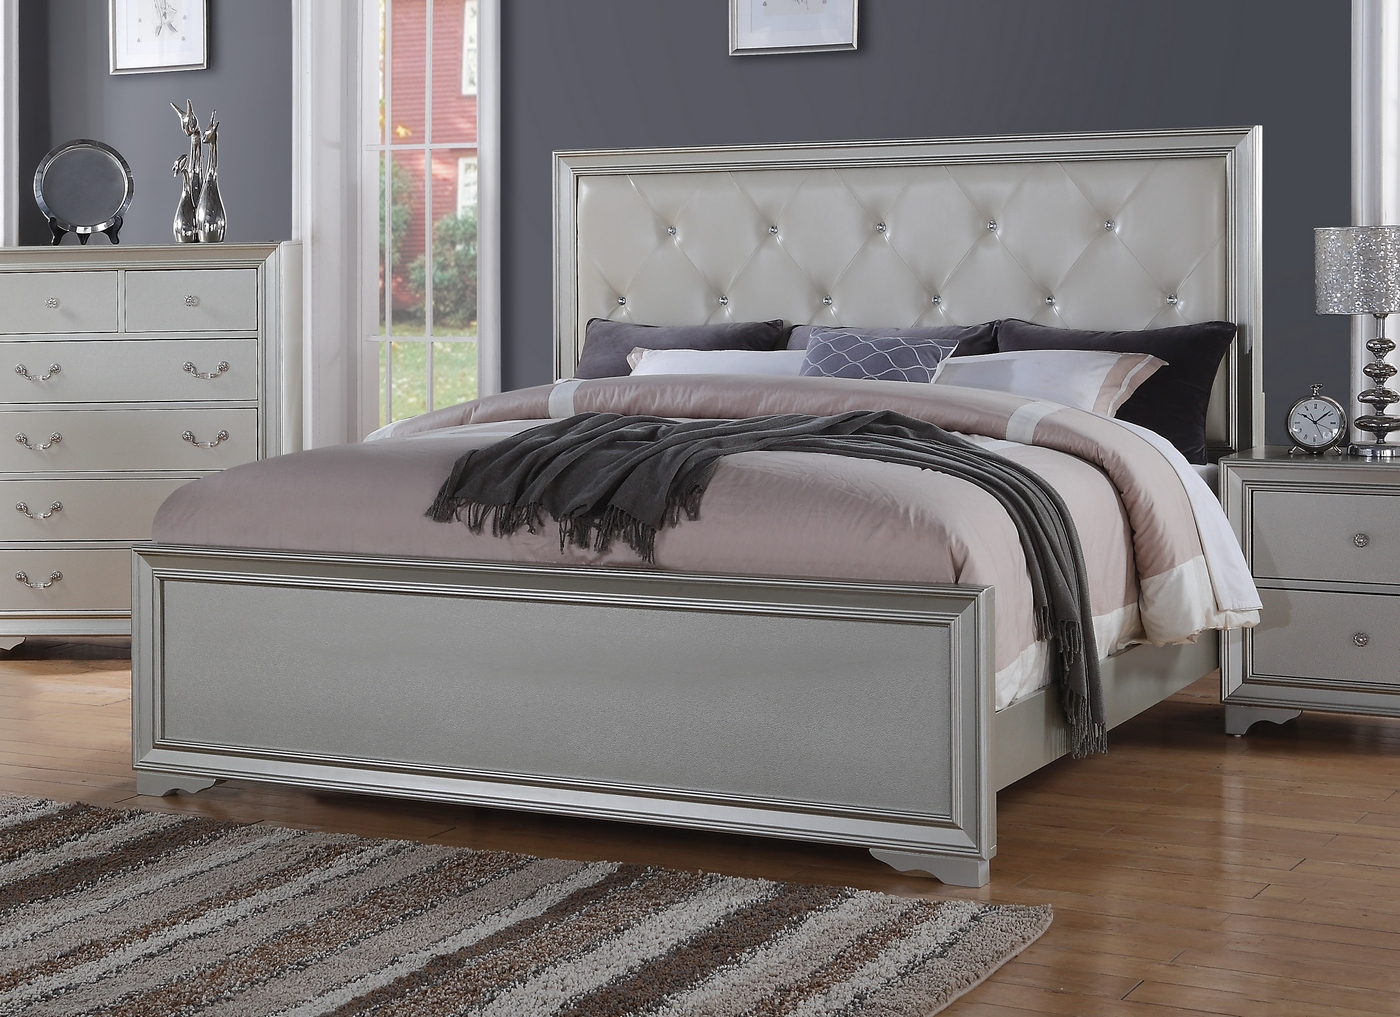 Silver Chic Contemporary Queen Bed With Rhinestone Leather